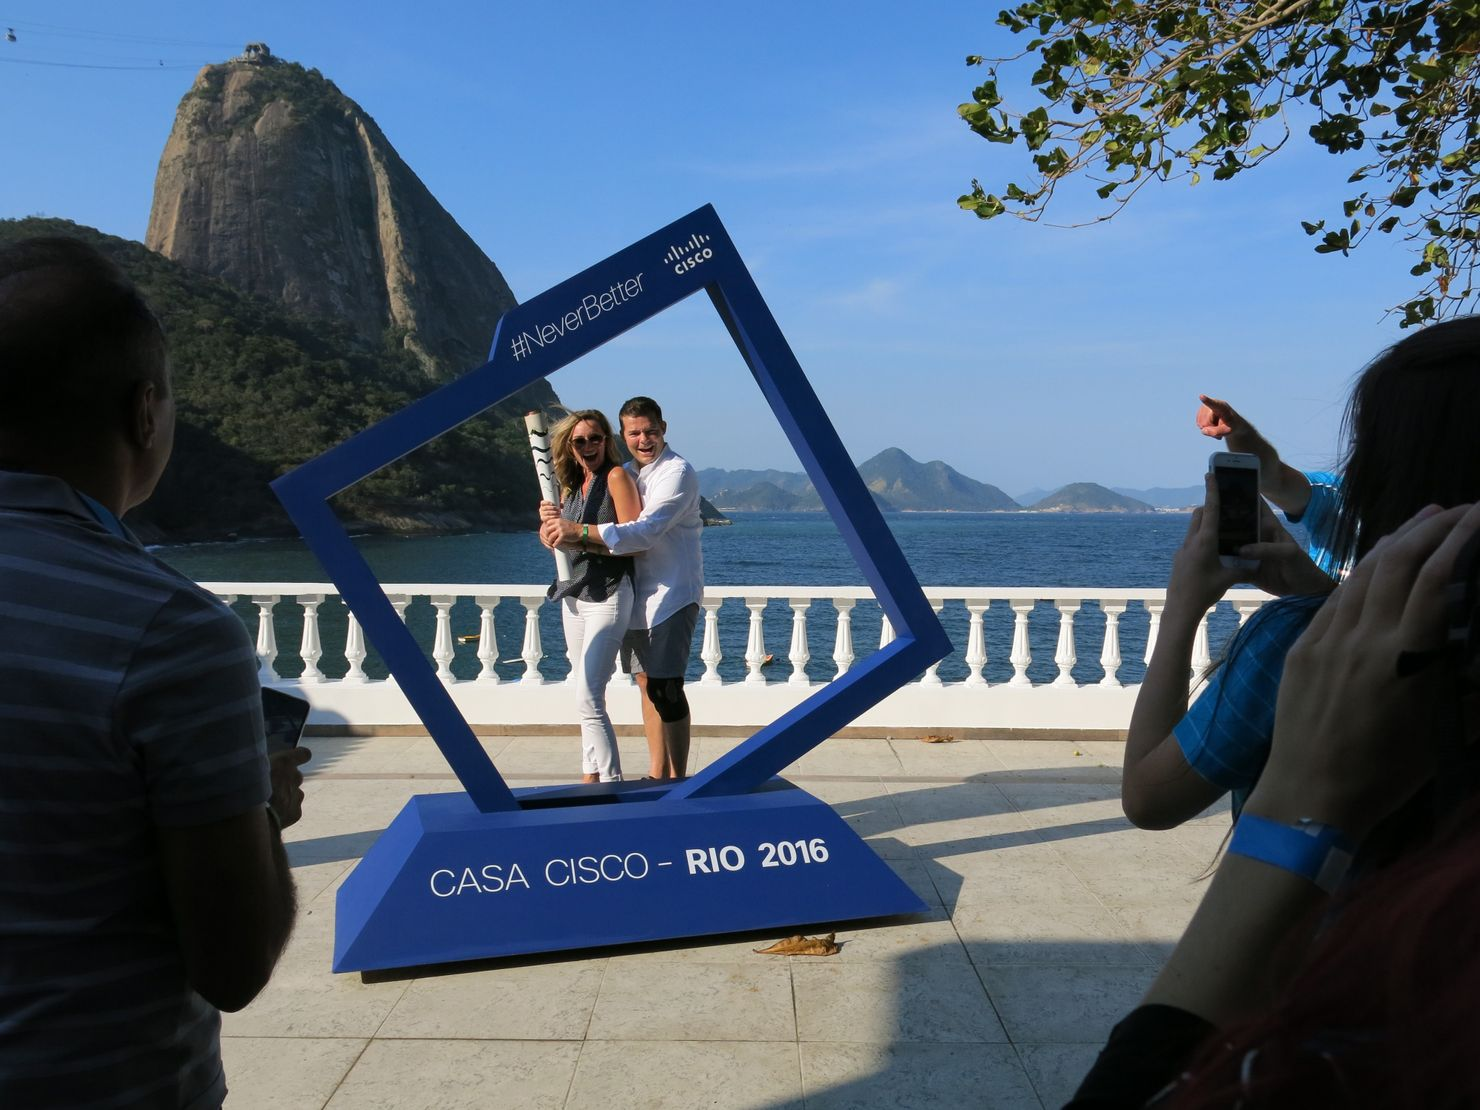 Image 16 for Casa Cisco at the 2016 Summer Olympics